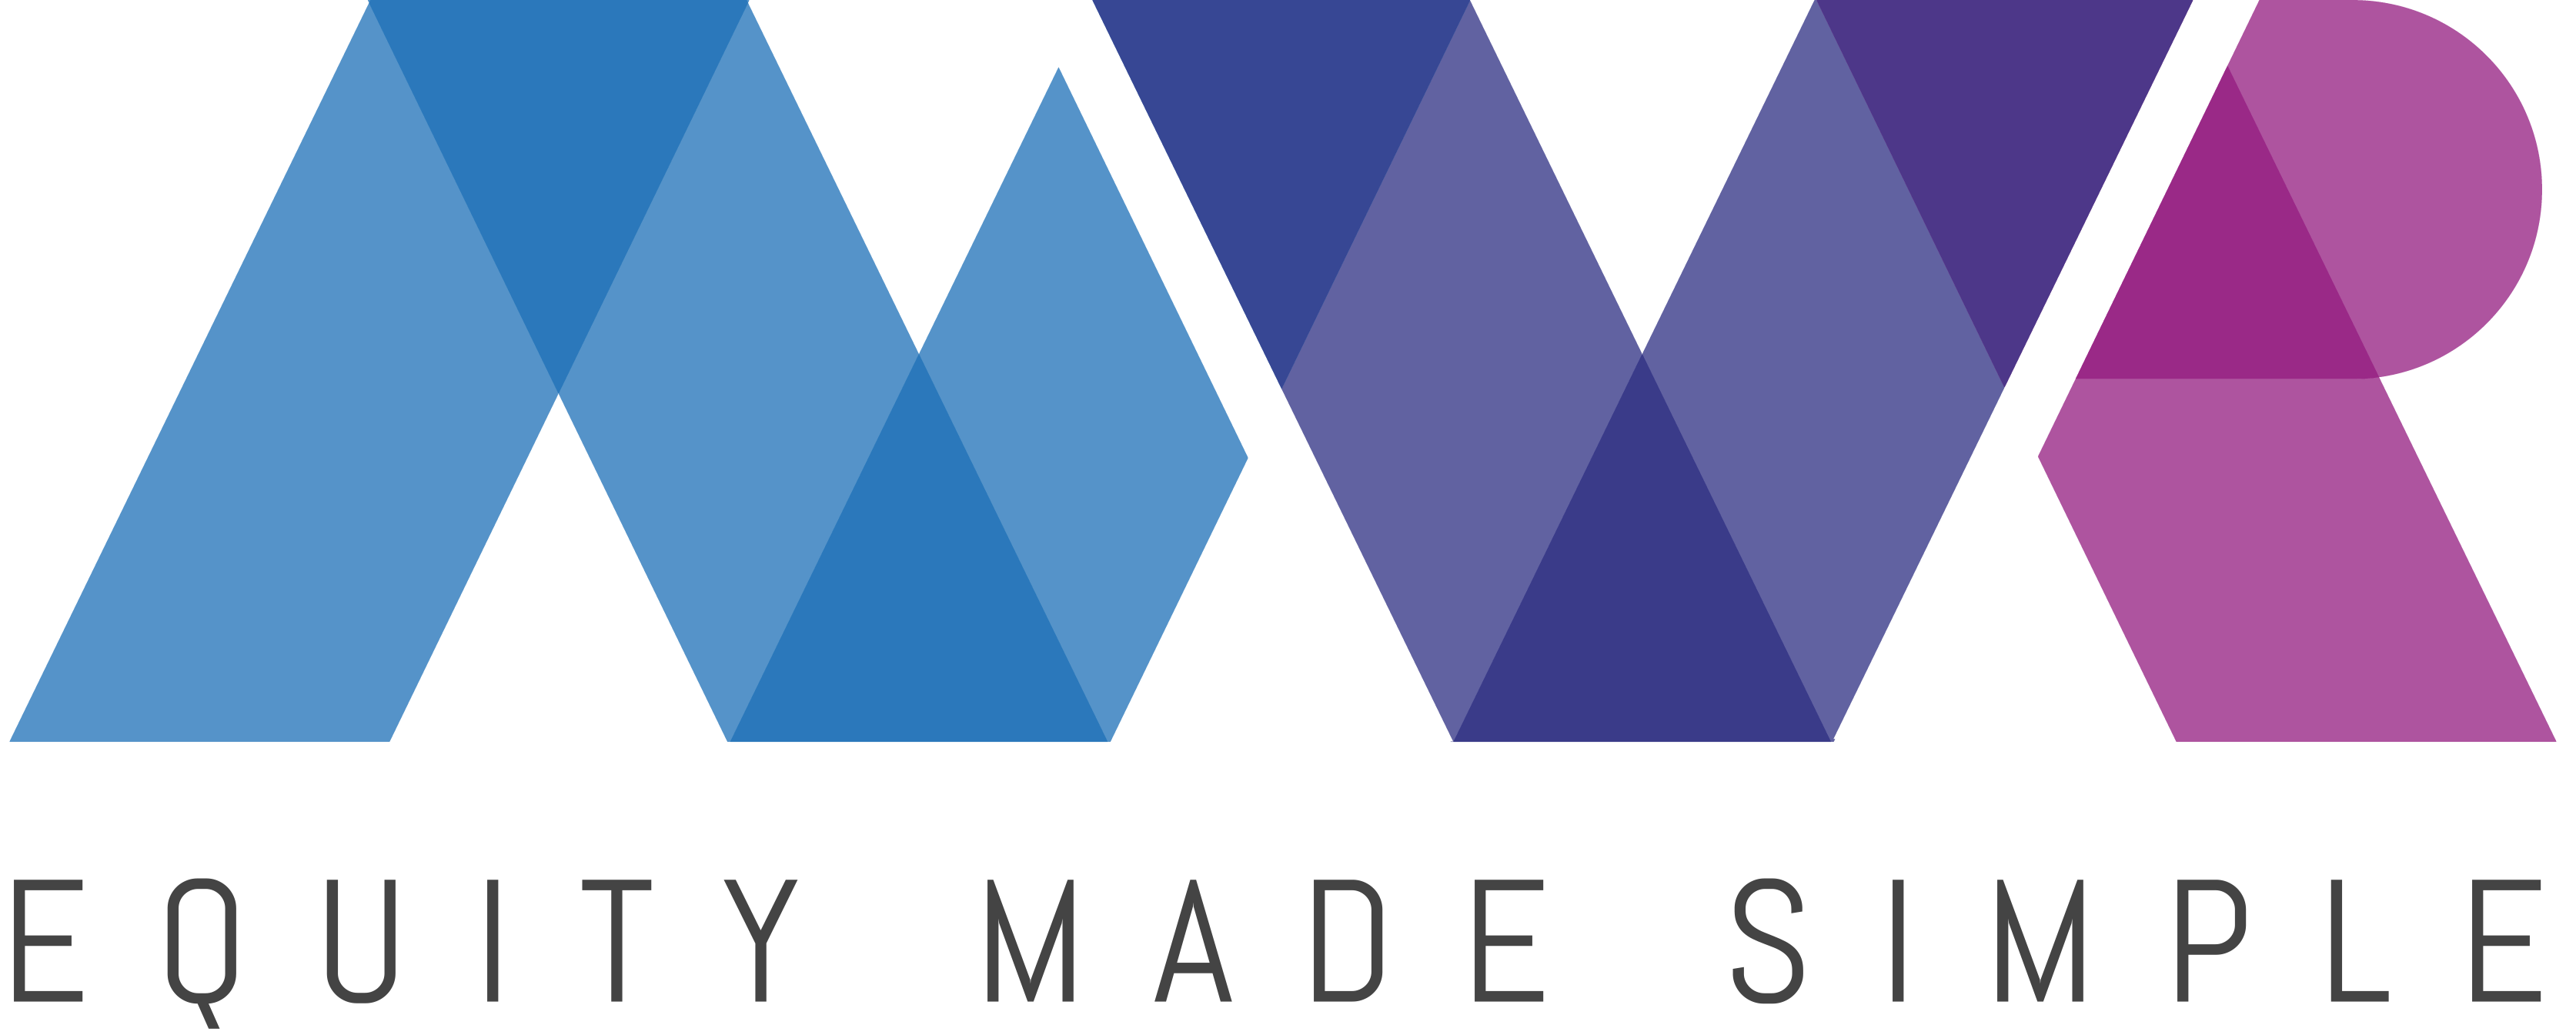 NVR equity made simple-color